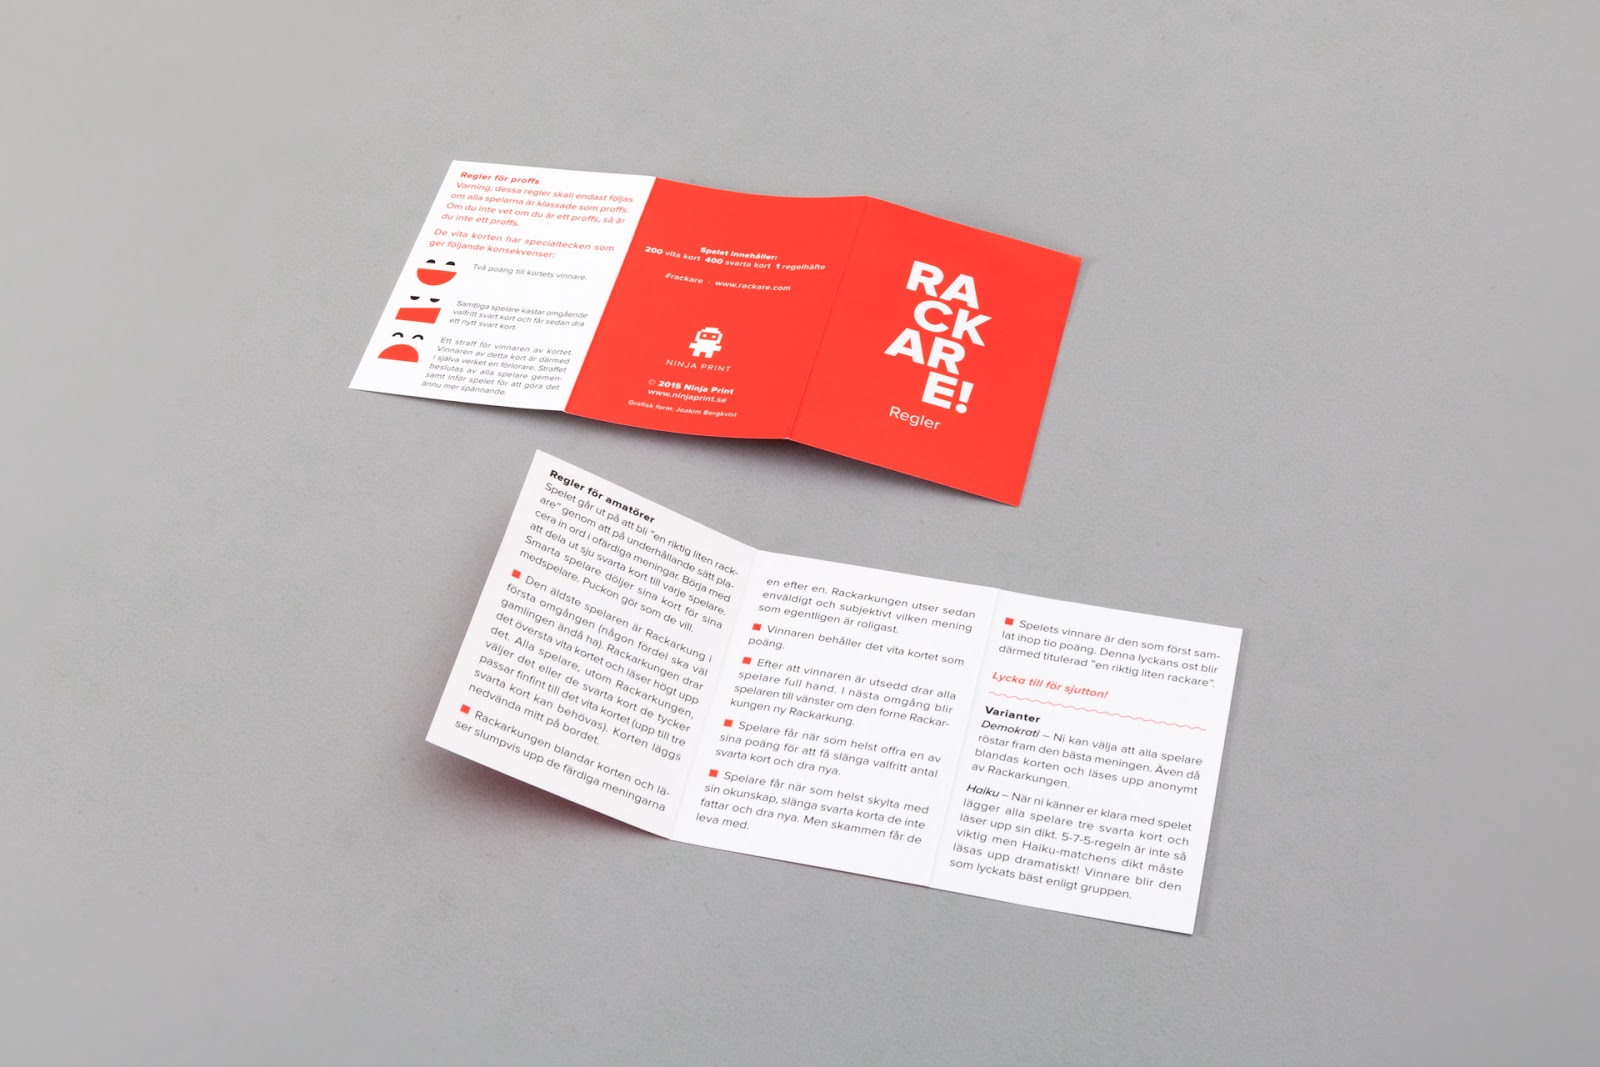 Rackare! concepts on packaging of the world creative package